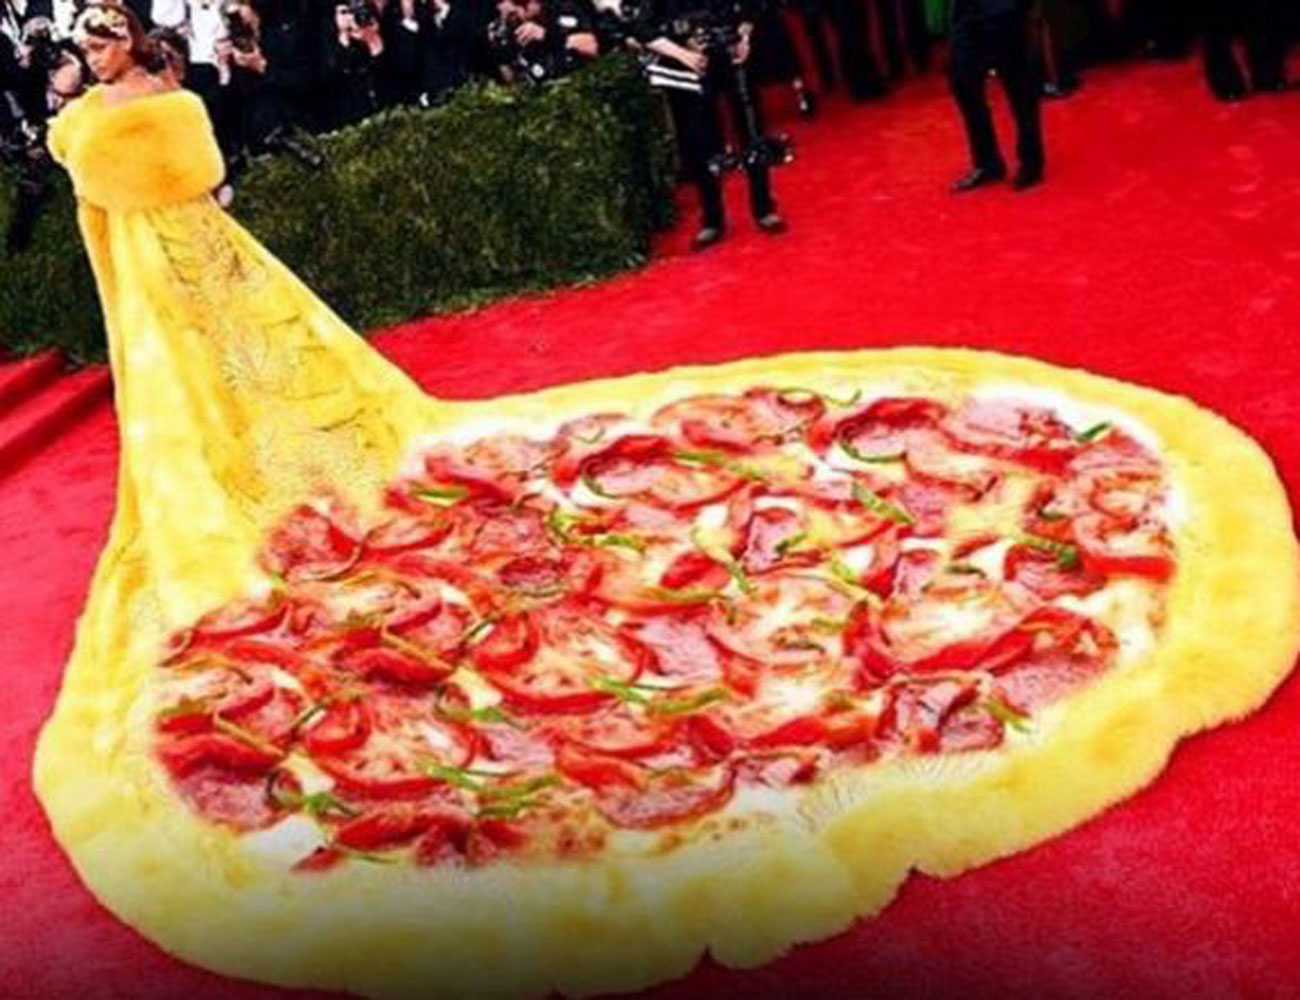 pizzzzzz spongebob ri pants, big bird and belle! rihanna's met gala gown